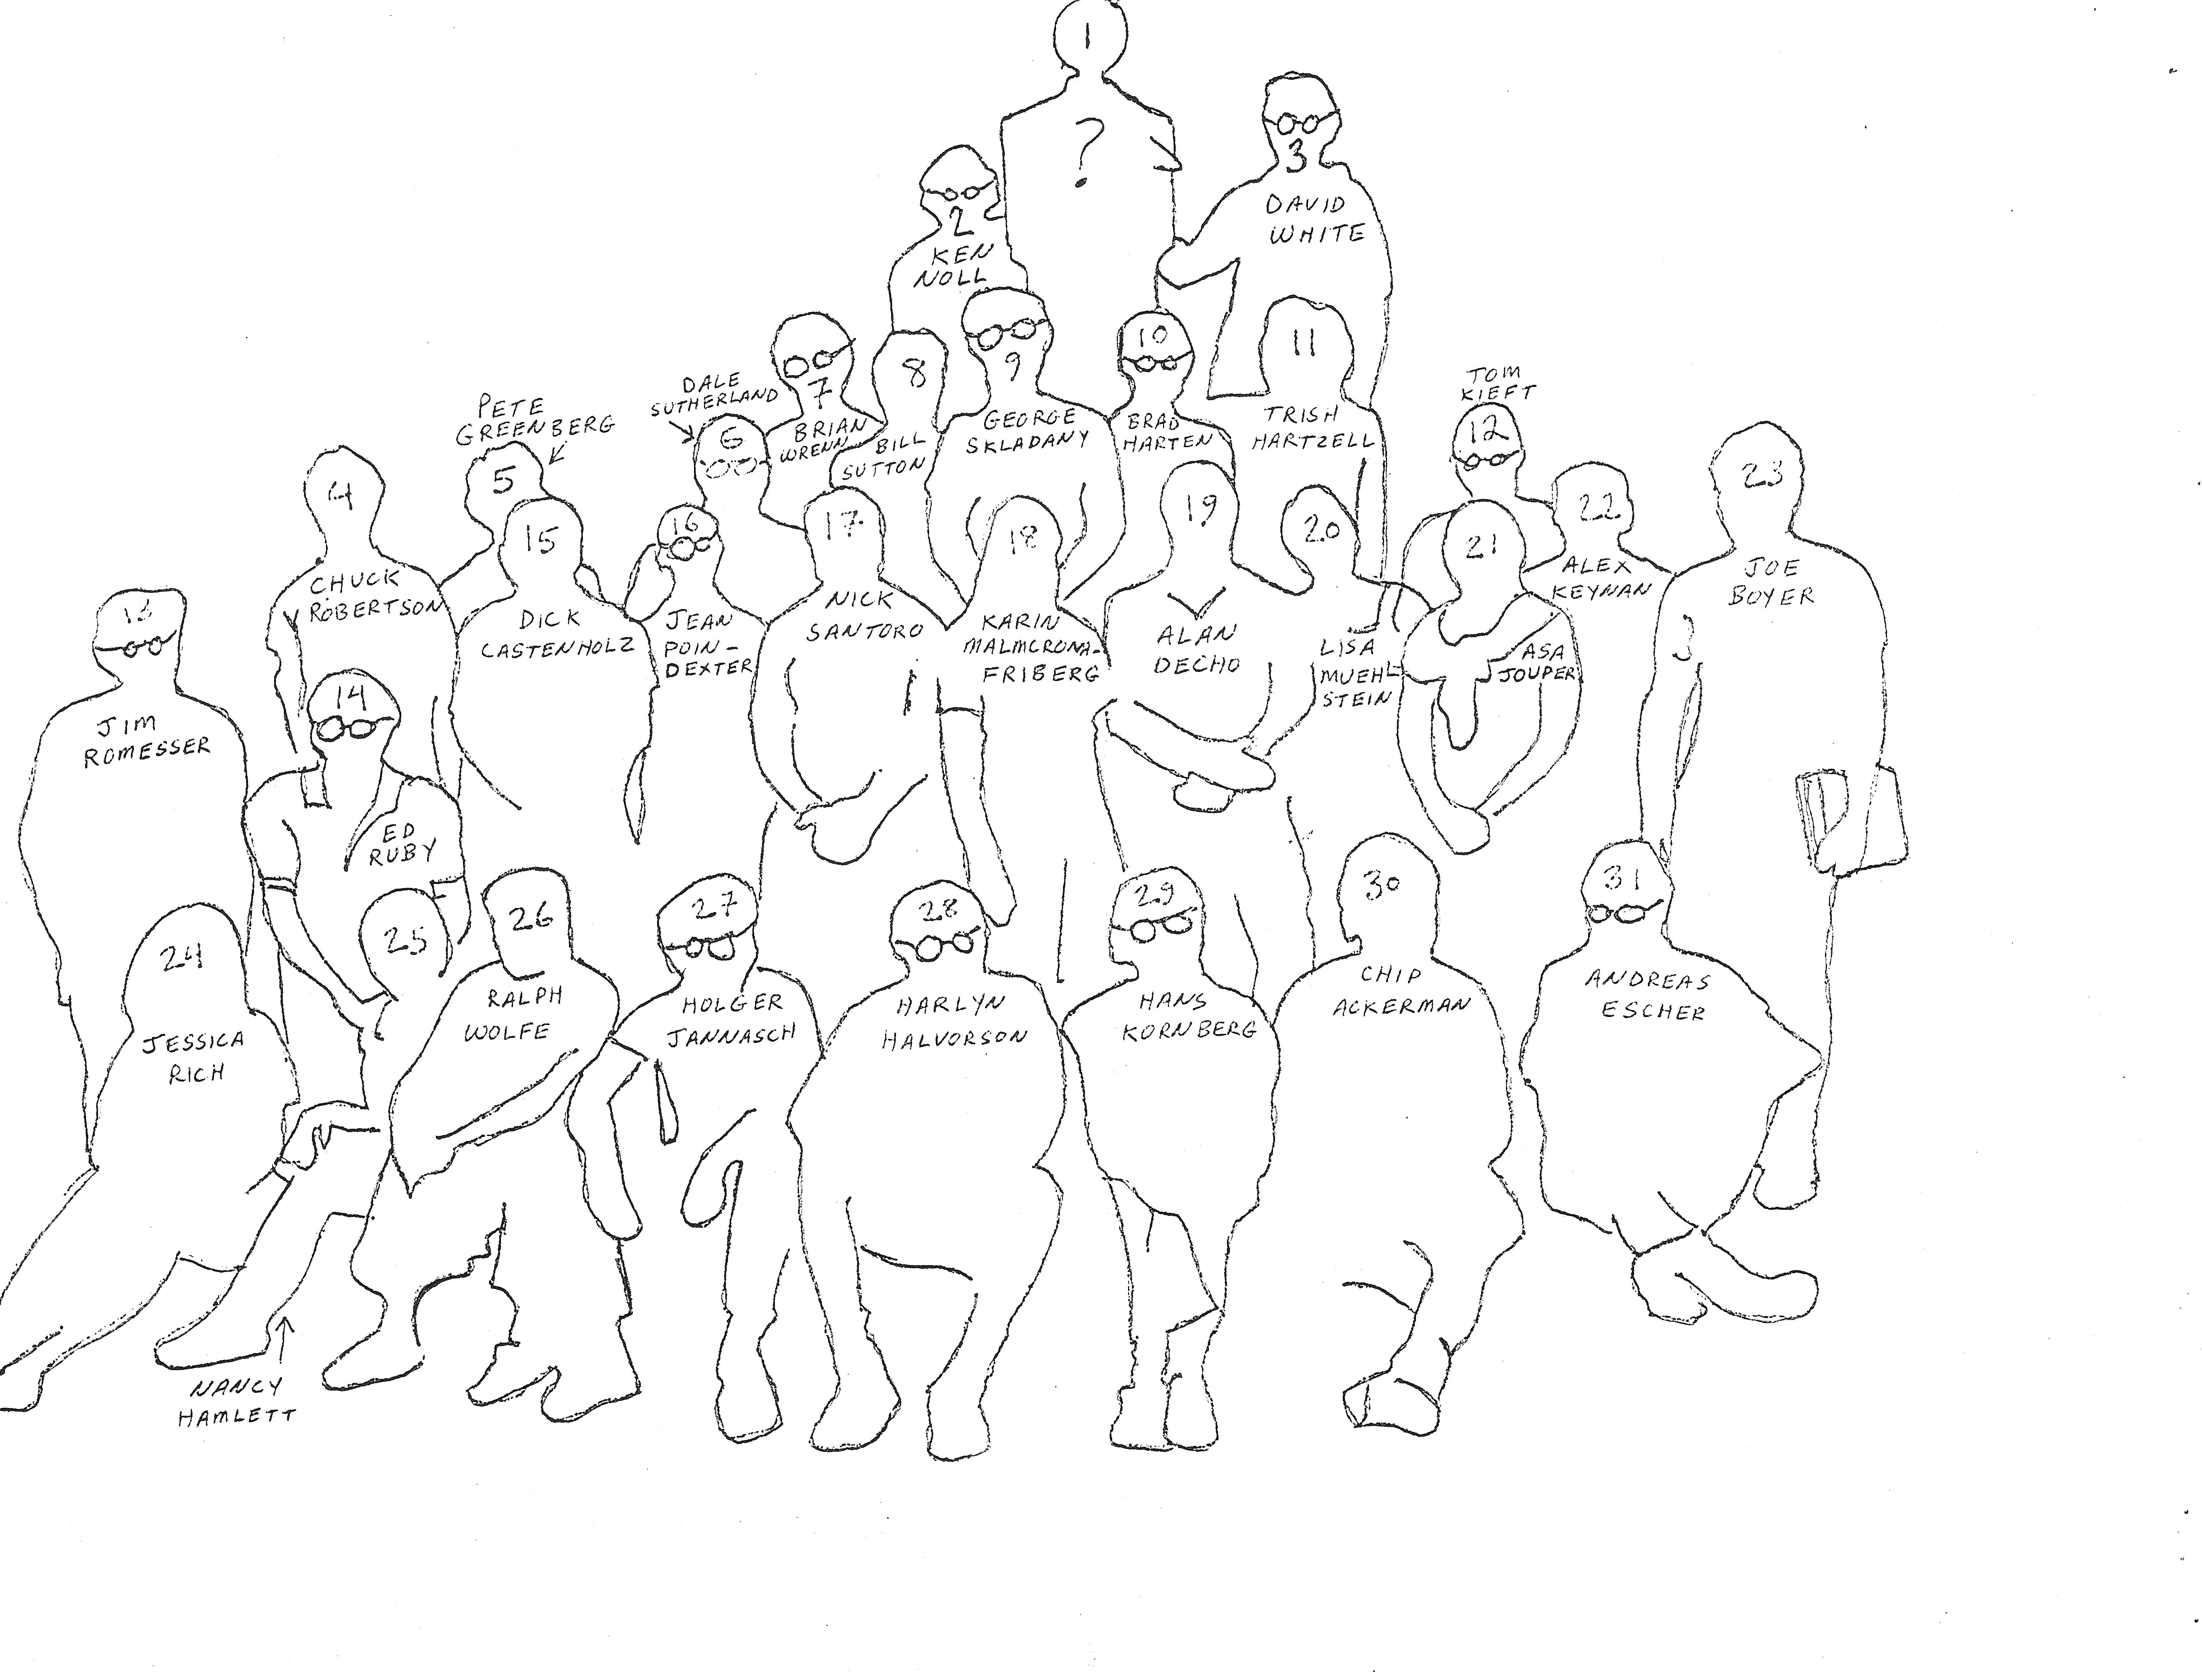 Traced outline of 31 people posing the Microbiology course